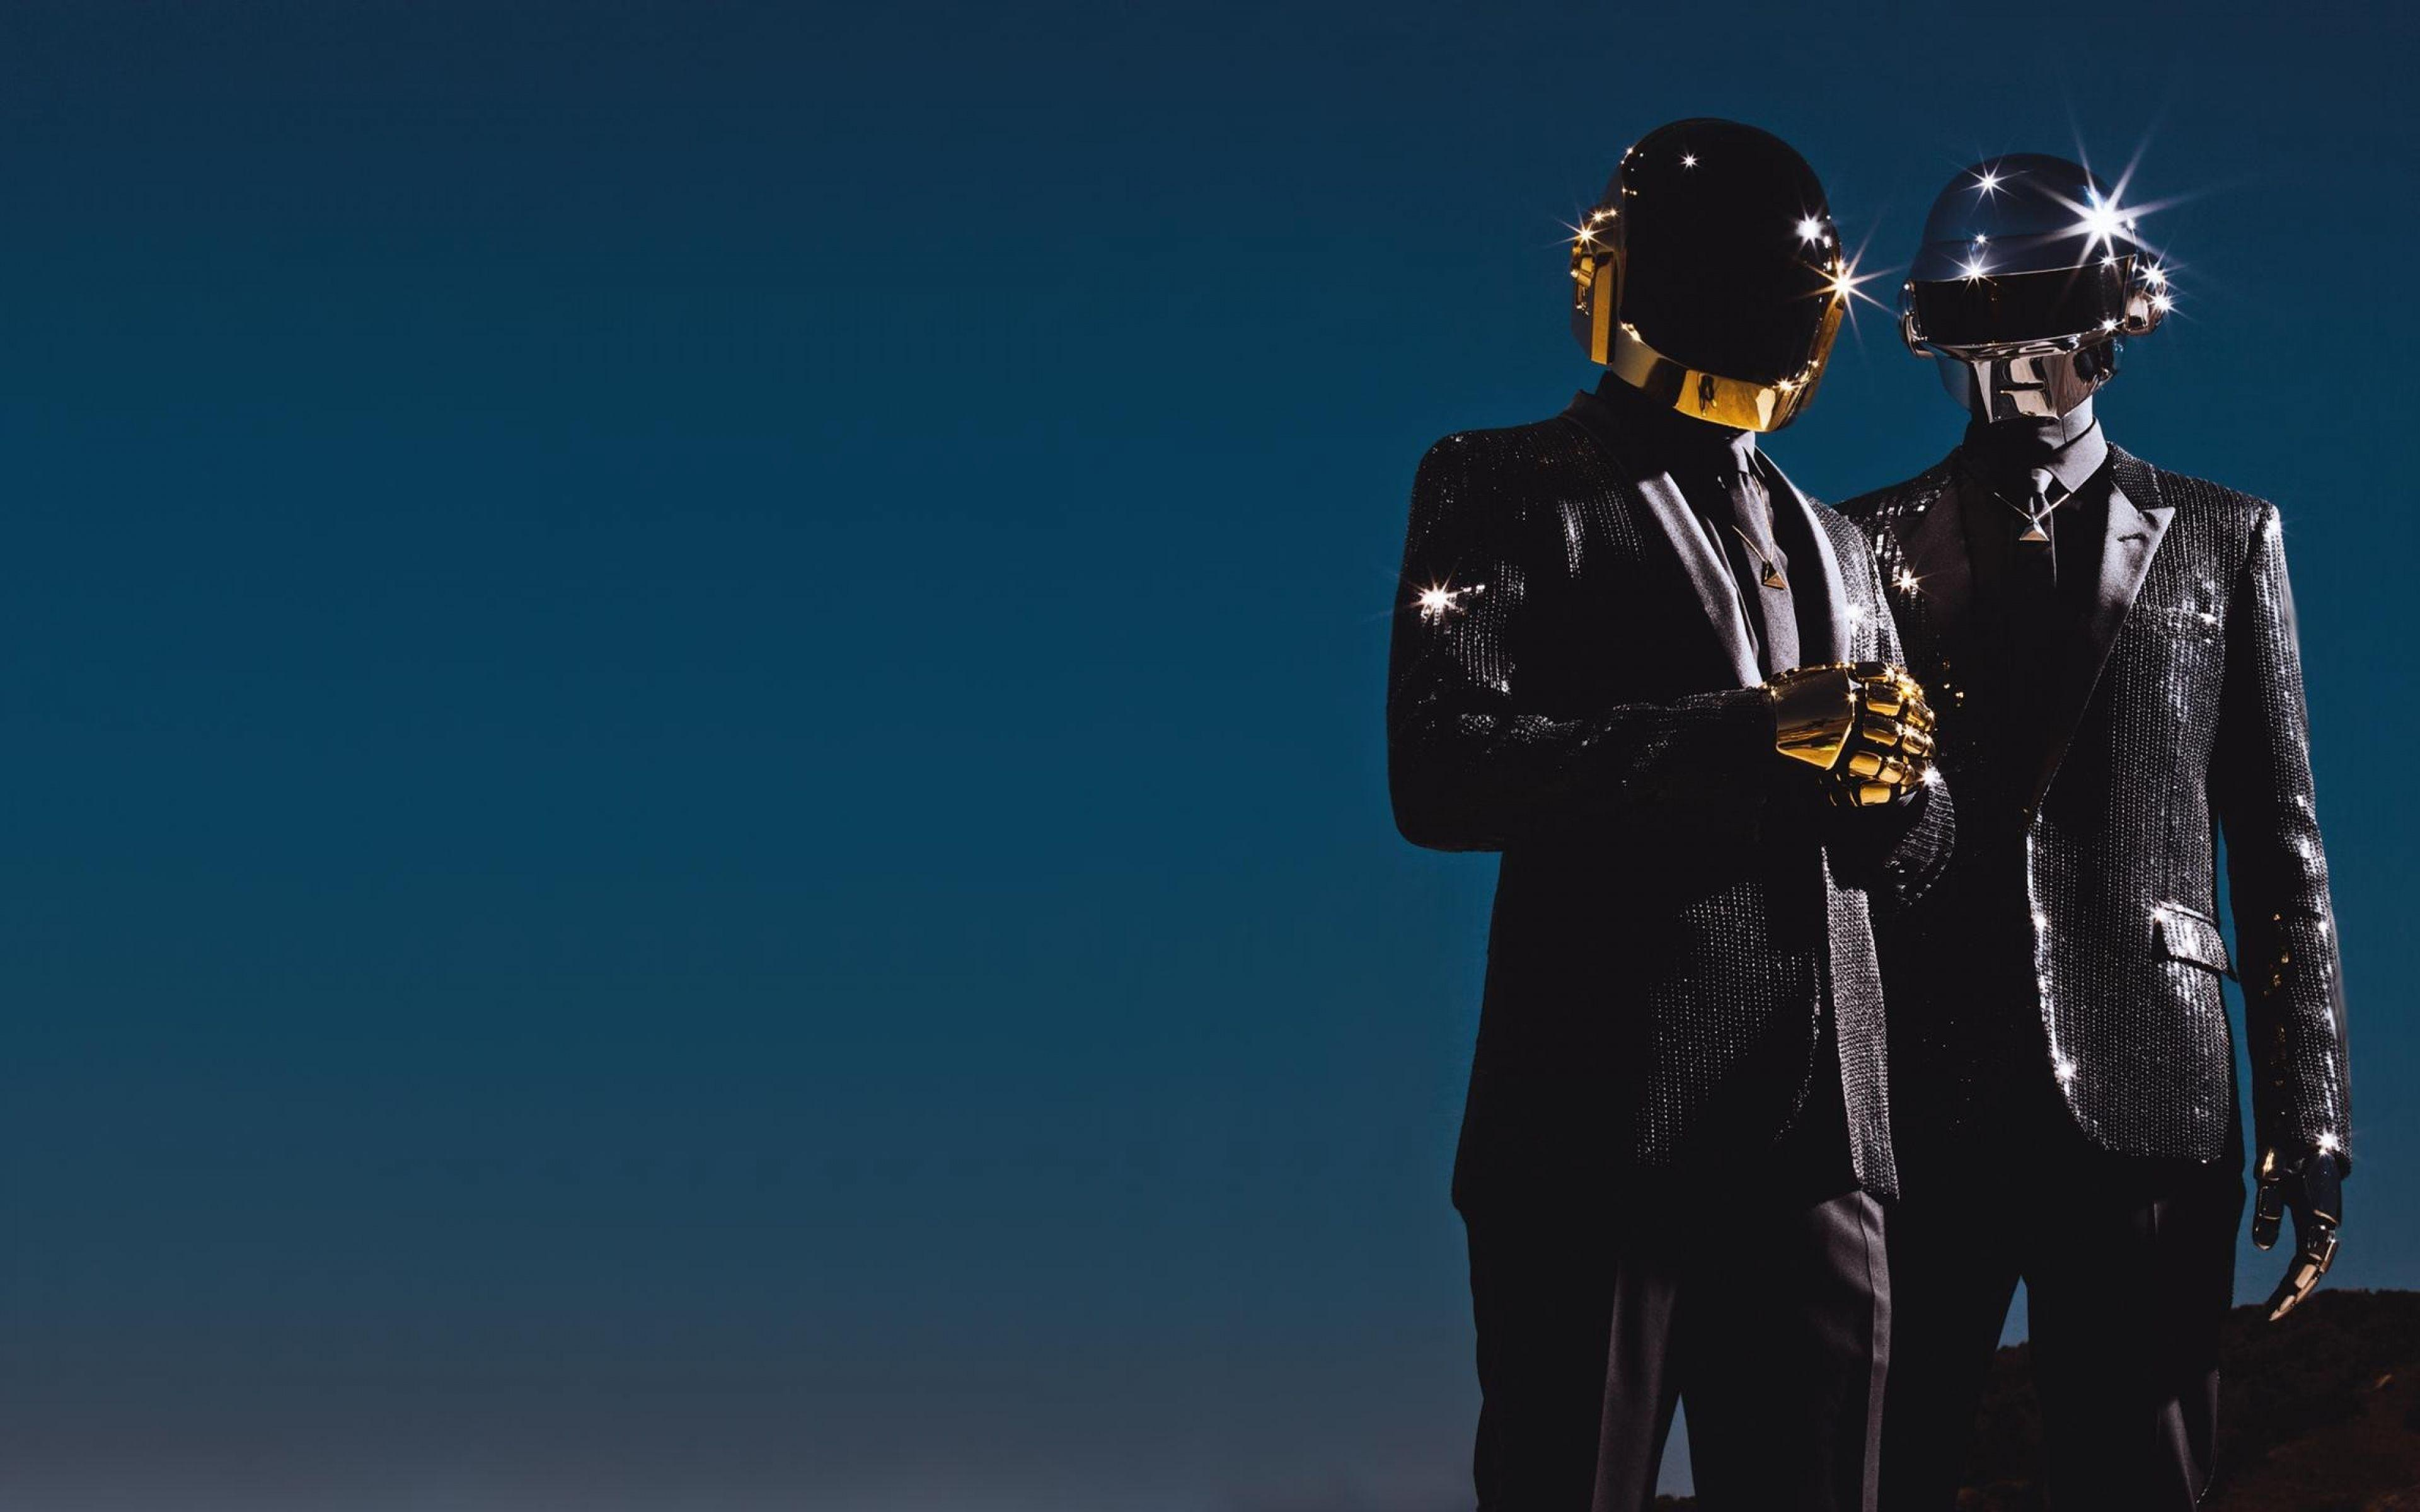 Daft Punk Wallpapers HD - Wallpaper Cave